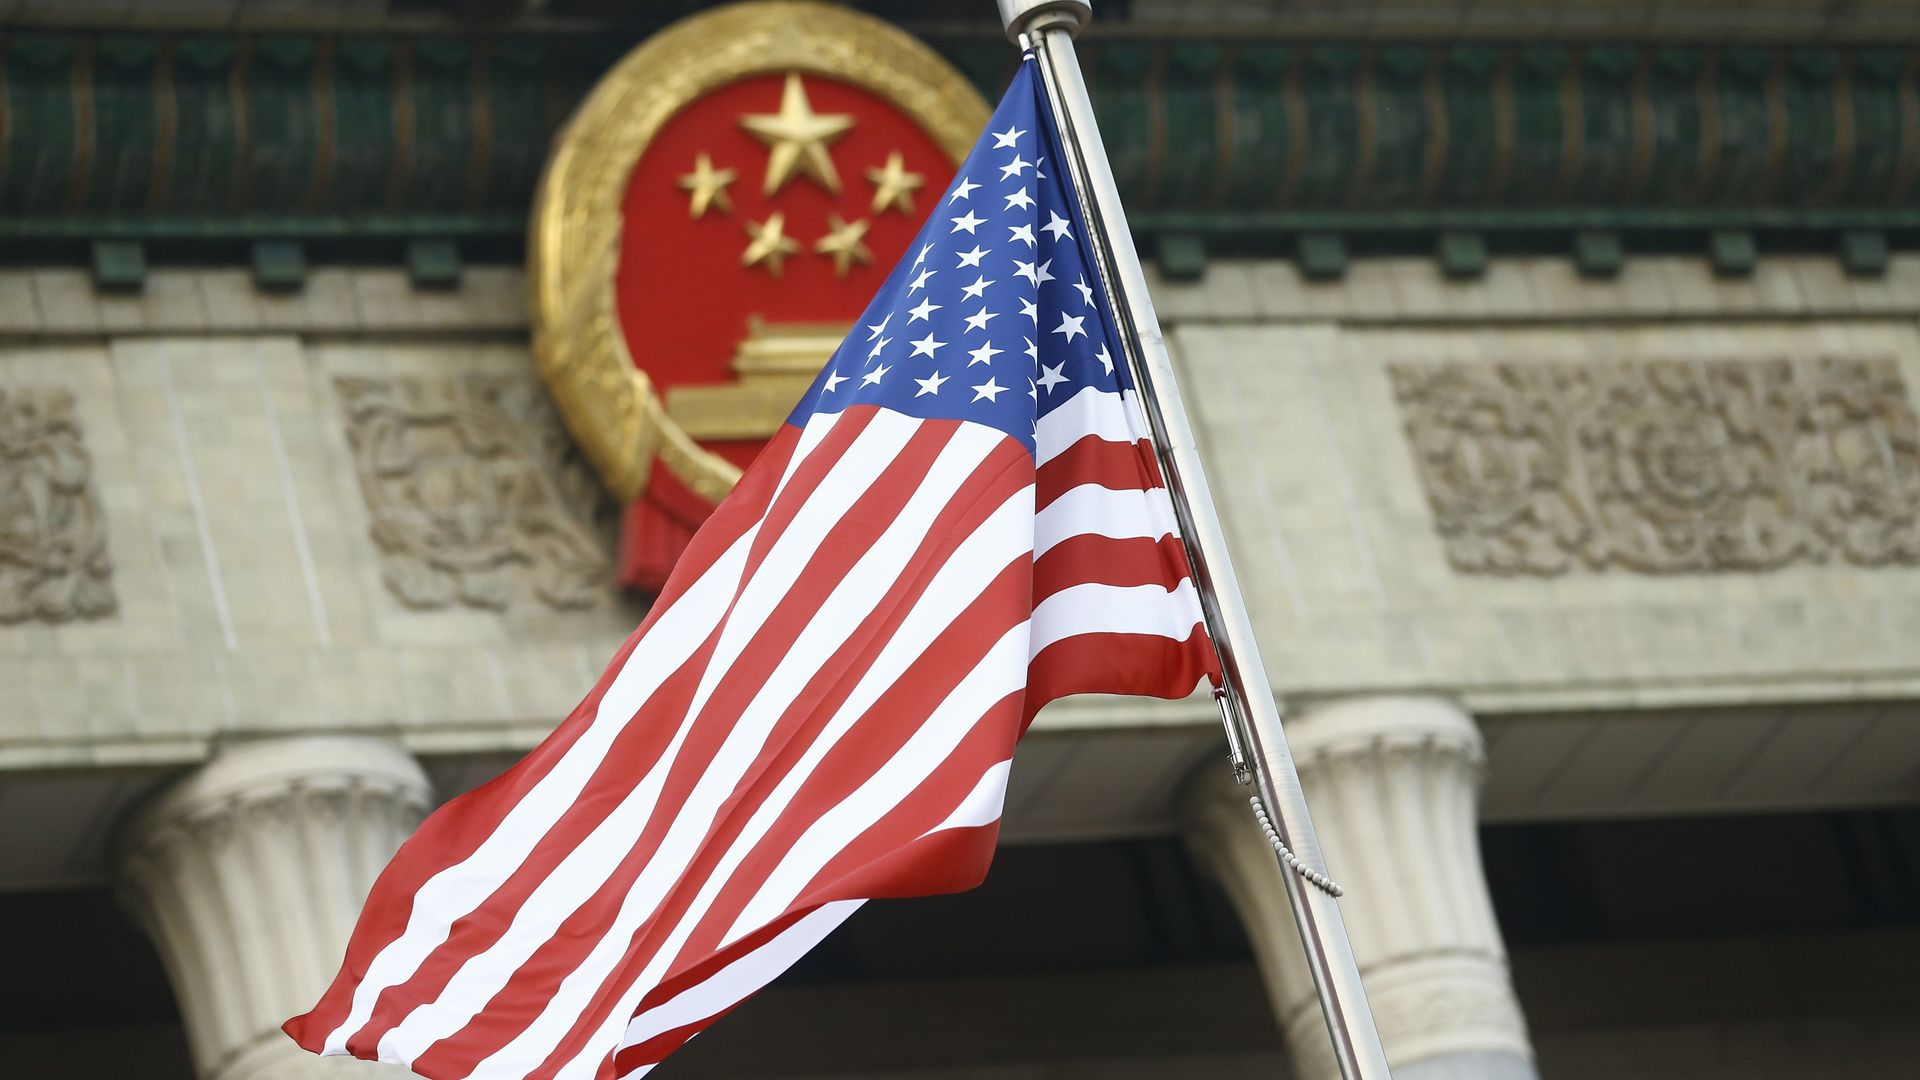 An American flag flies in front of a Chinese emblem.